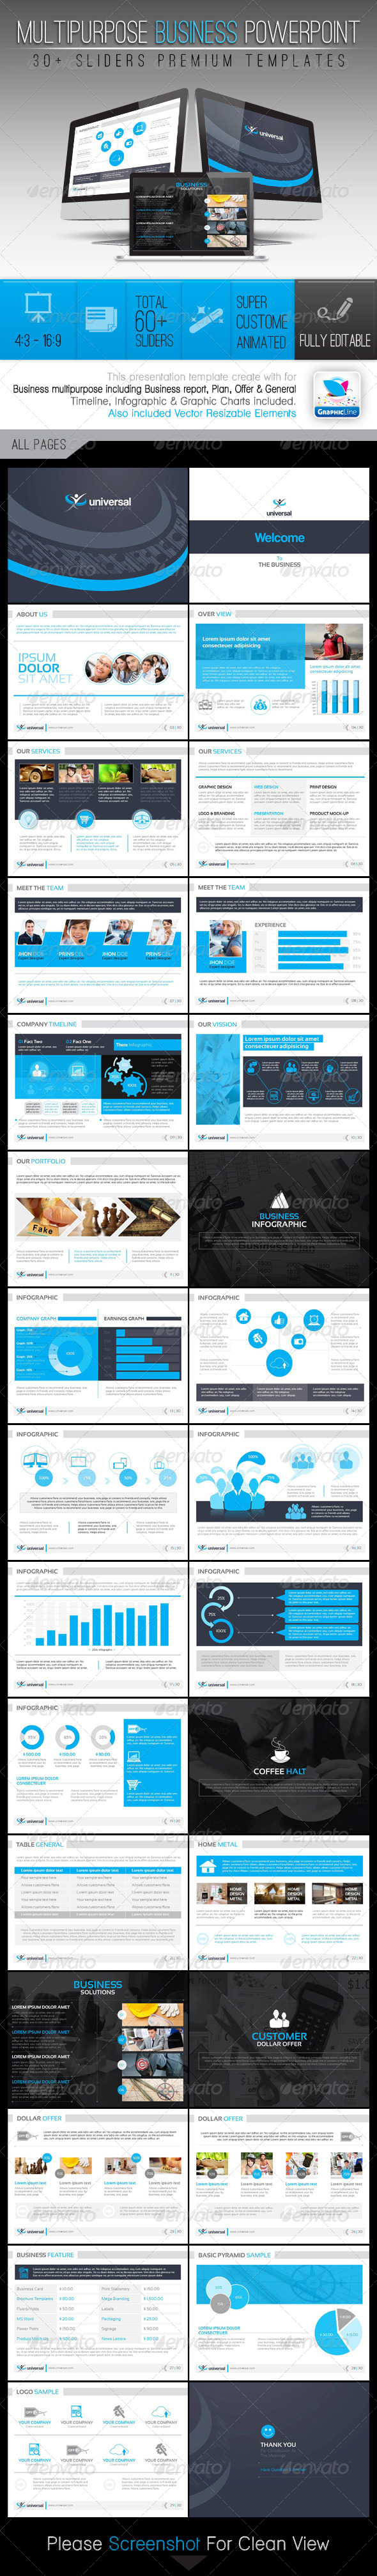 GraphicRiver Universal Multipurpose Business Templates 7827392